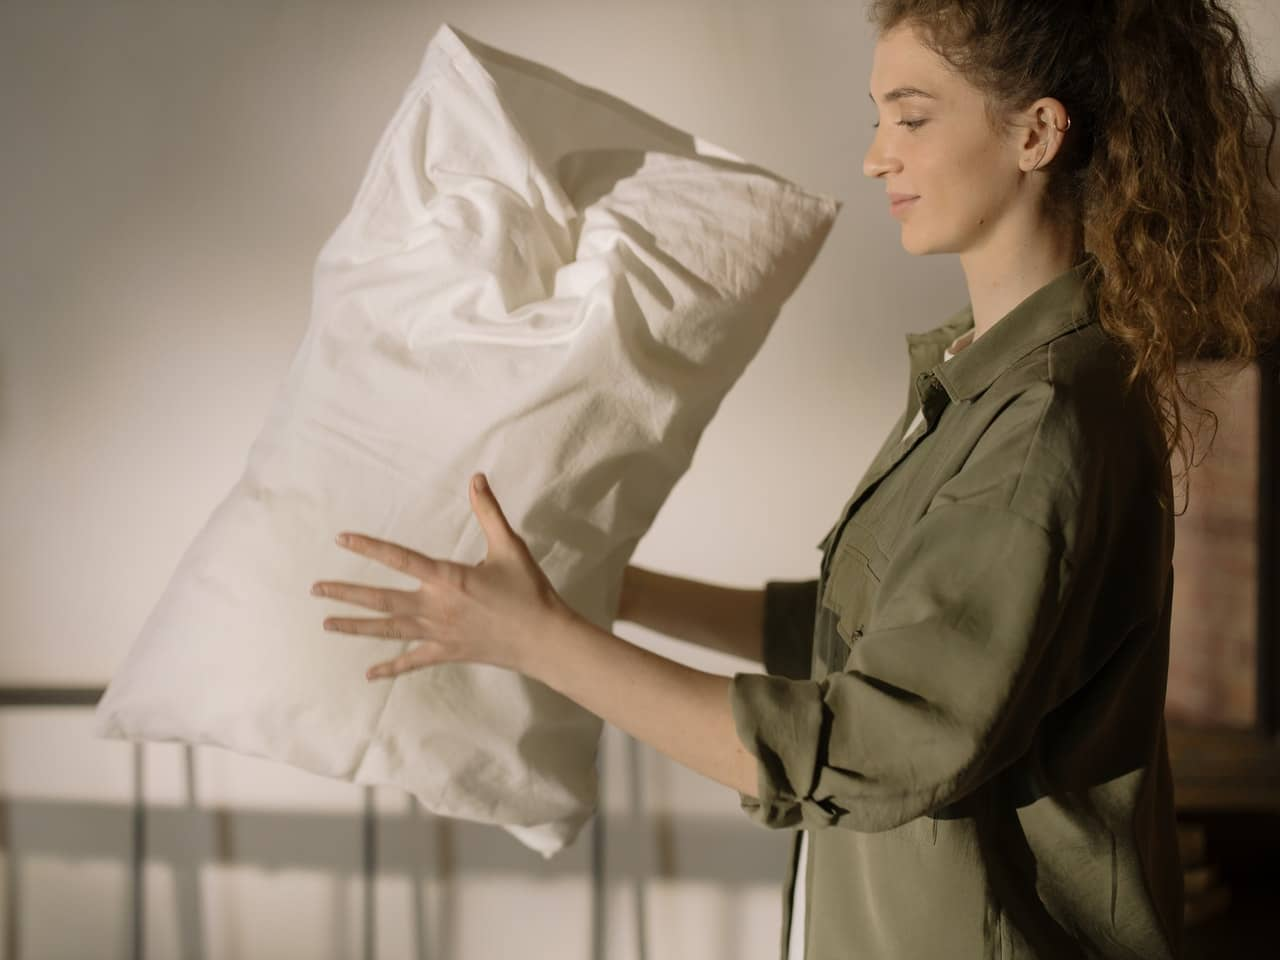 Young woman shaking a pillow